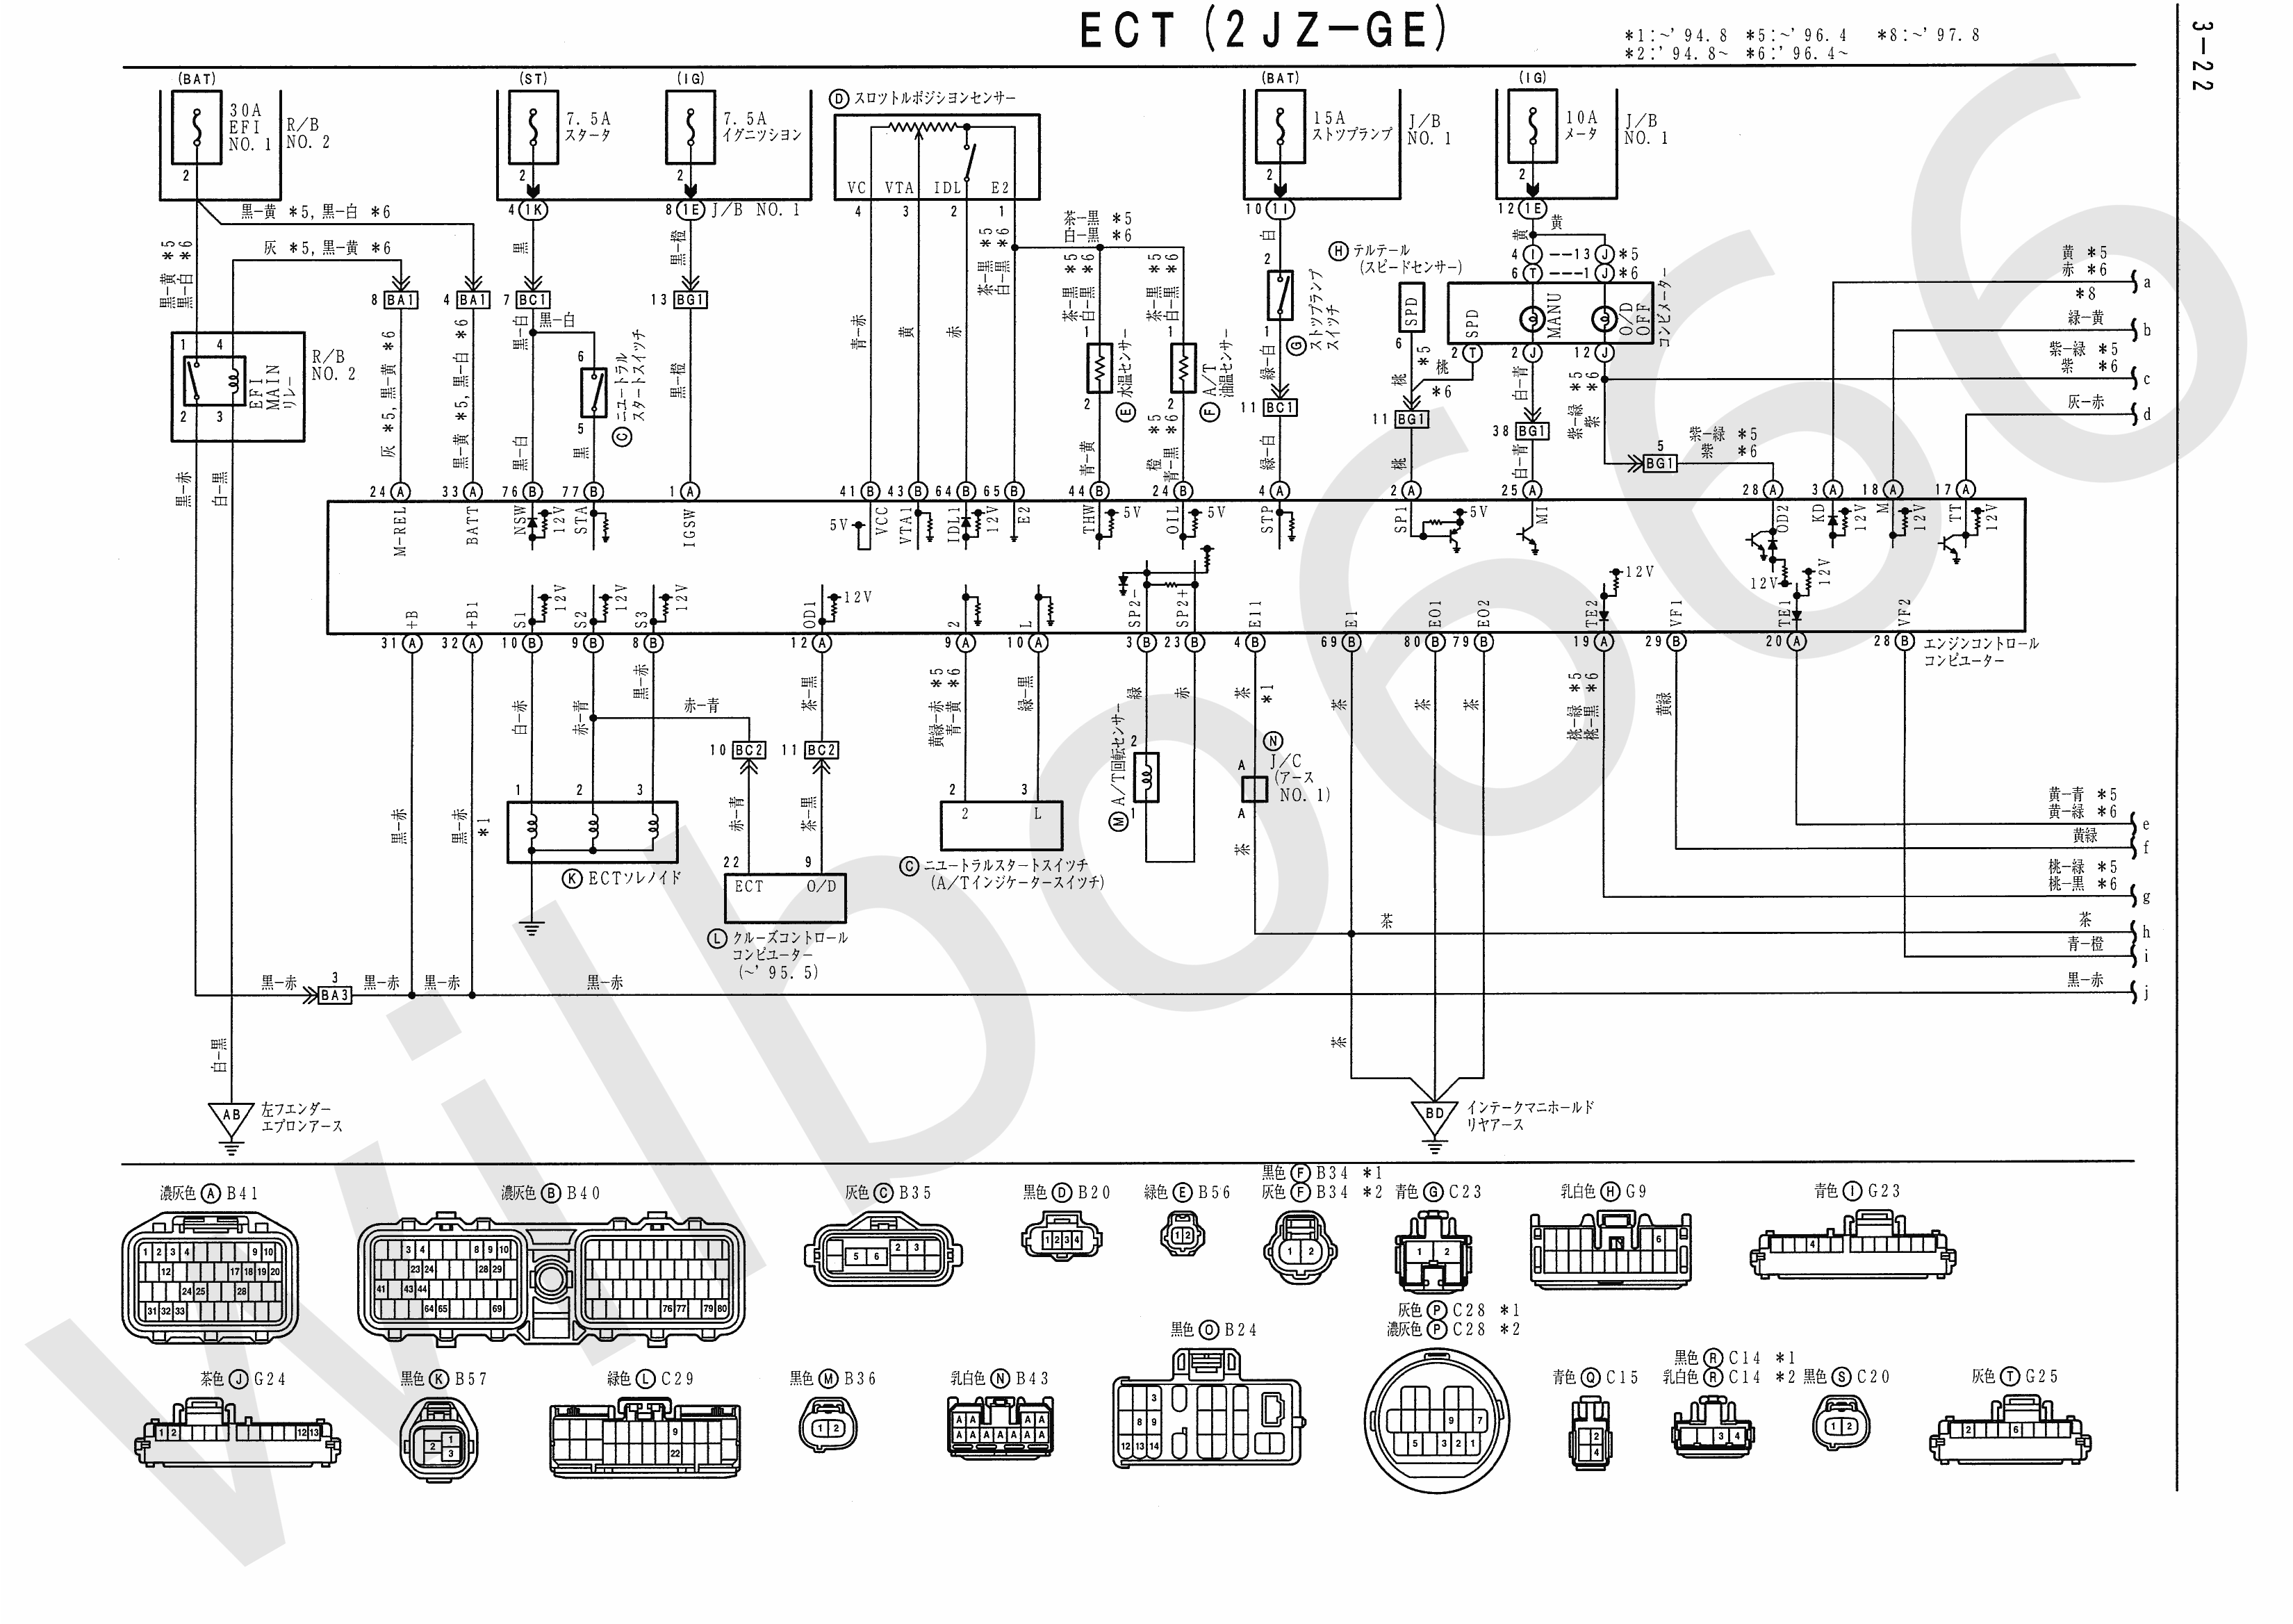 JZA80 Electrical Wiring Diagram 6742505 3 22 wilbo666 2jz ge jza80 supra engine wiring ge wiring diagrams at panicattacktreatment.co